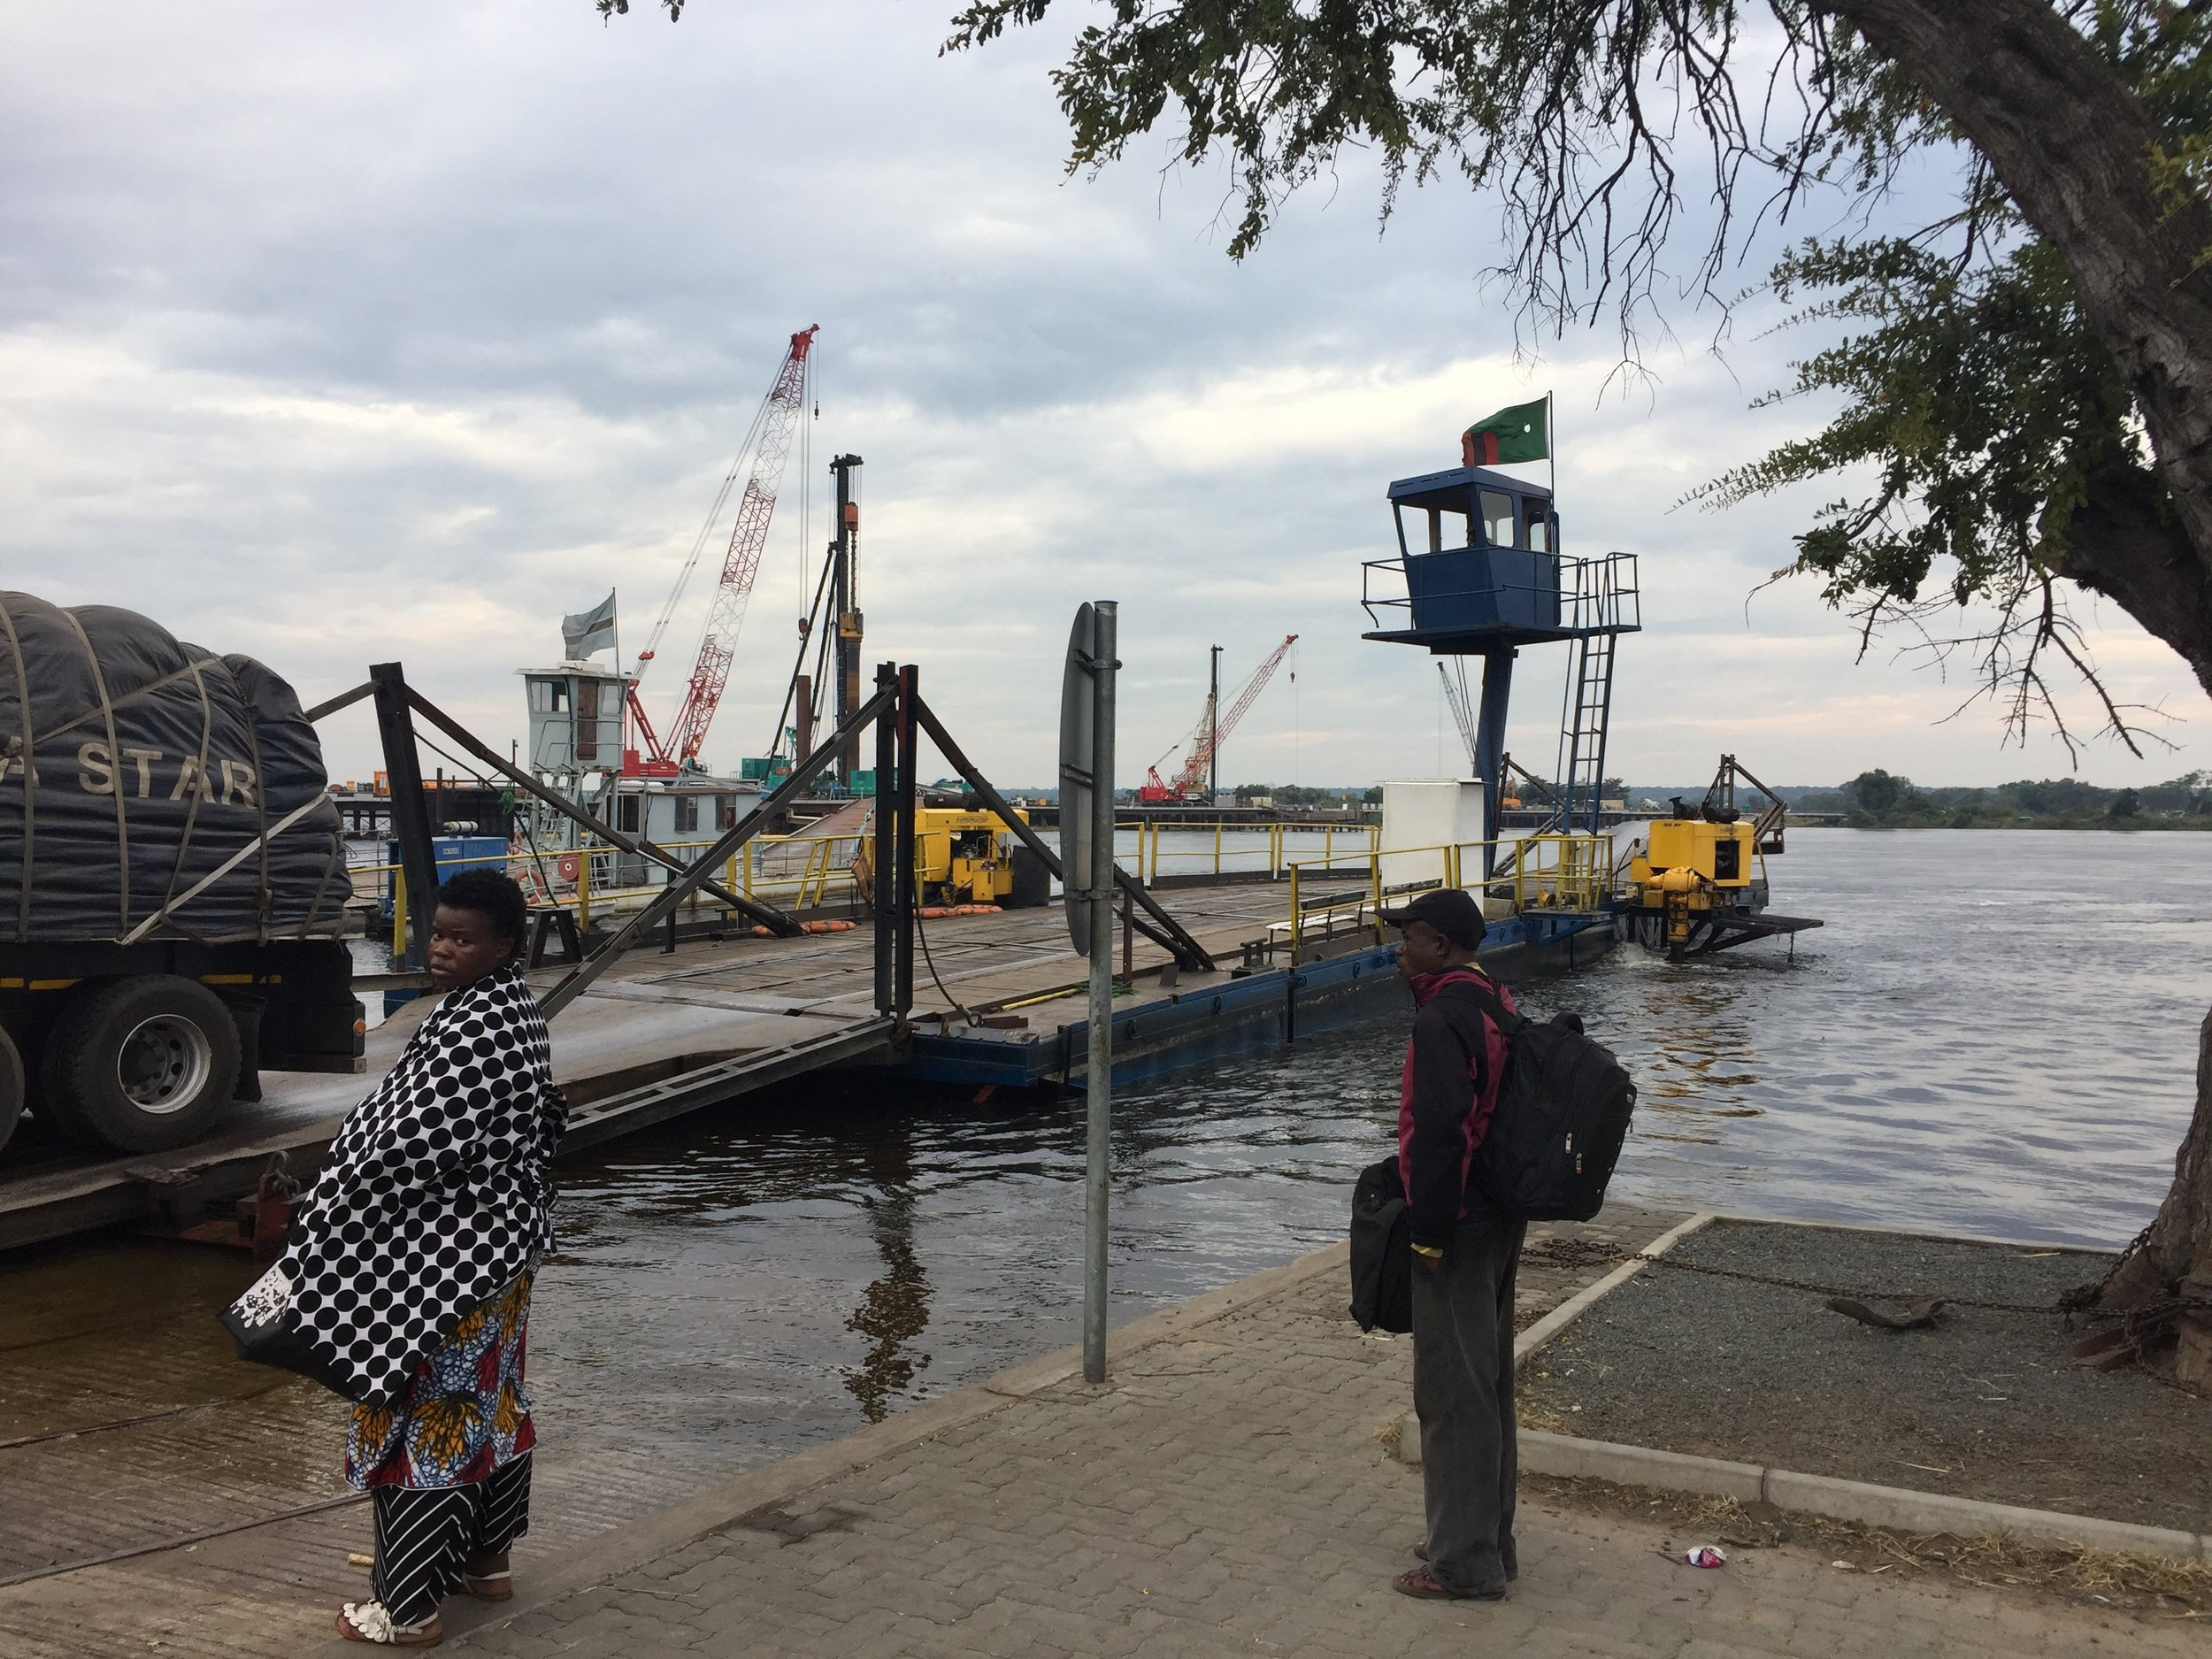 A woman wrapped in her floral dress and a blanket for the chilly morning waits alongside the Kazungula Ferry, while a big rig disembarks from the Zambia side.